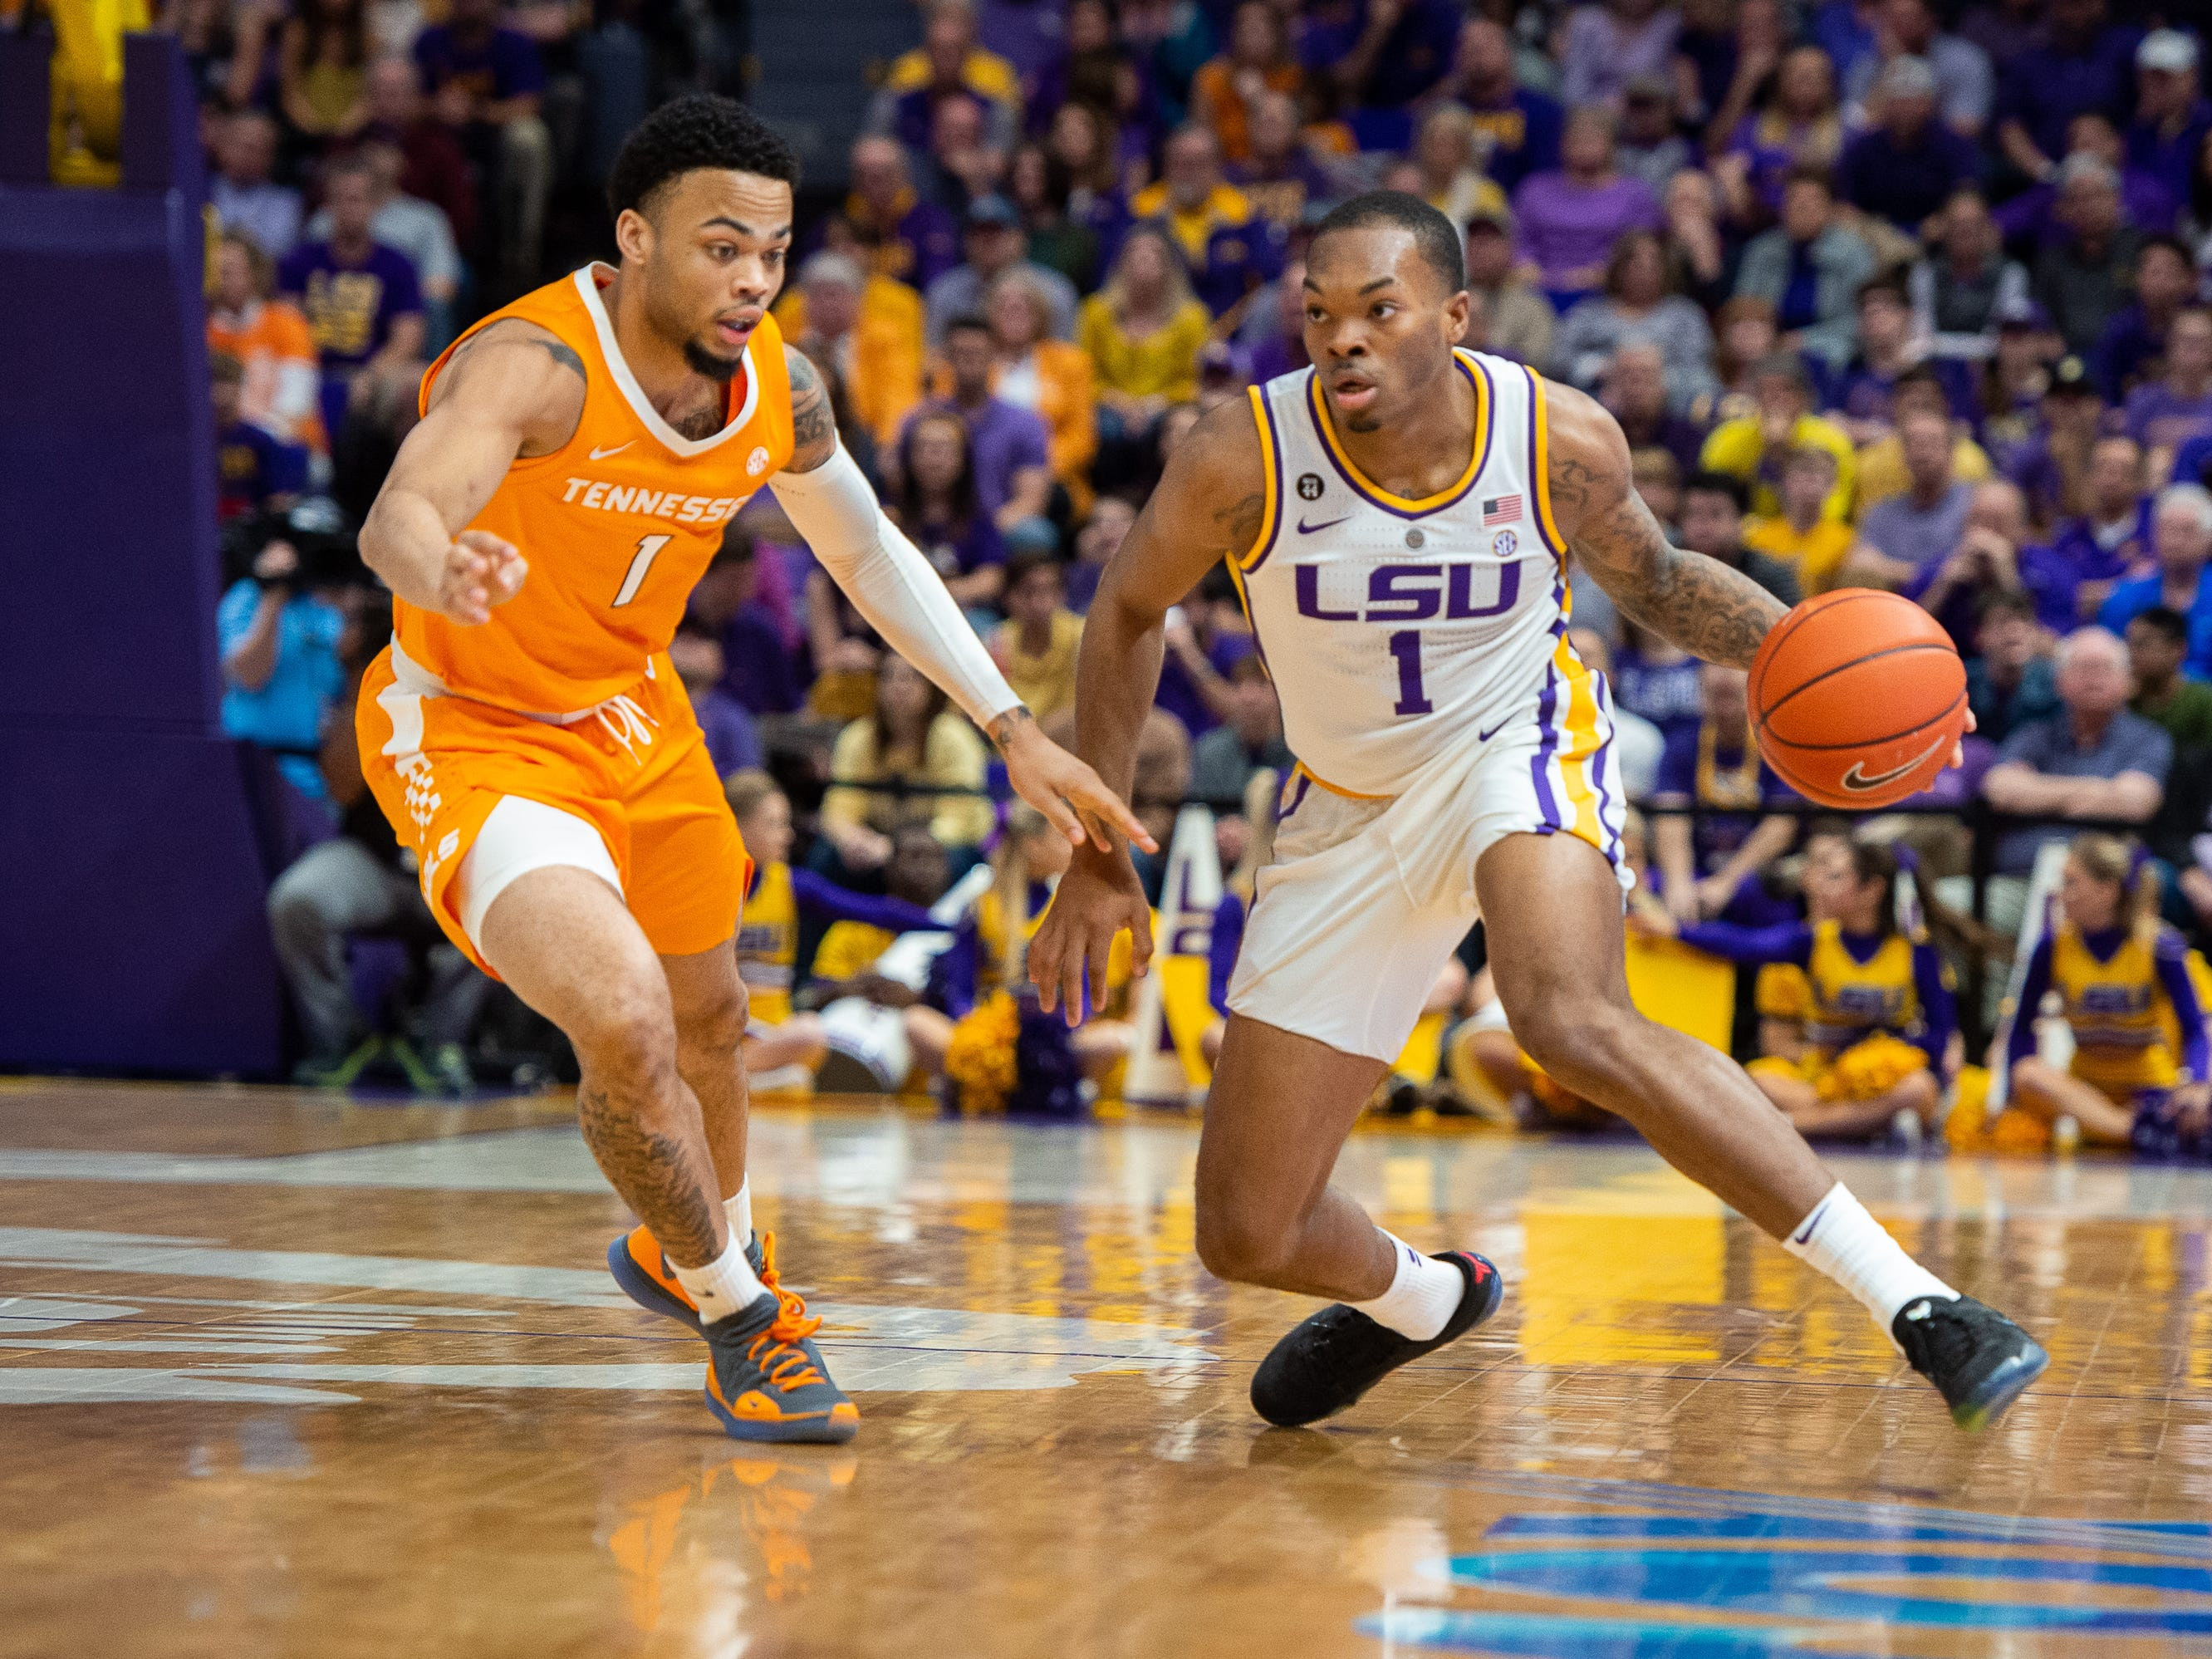 Javonte Smart drives to the basket as the LSU Fighting Tigers take on the Tennessee Volunteers at the Pete Marovich Assembly Center. Saturday, Feb. 23, 2019.